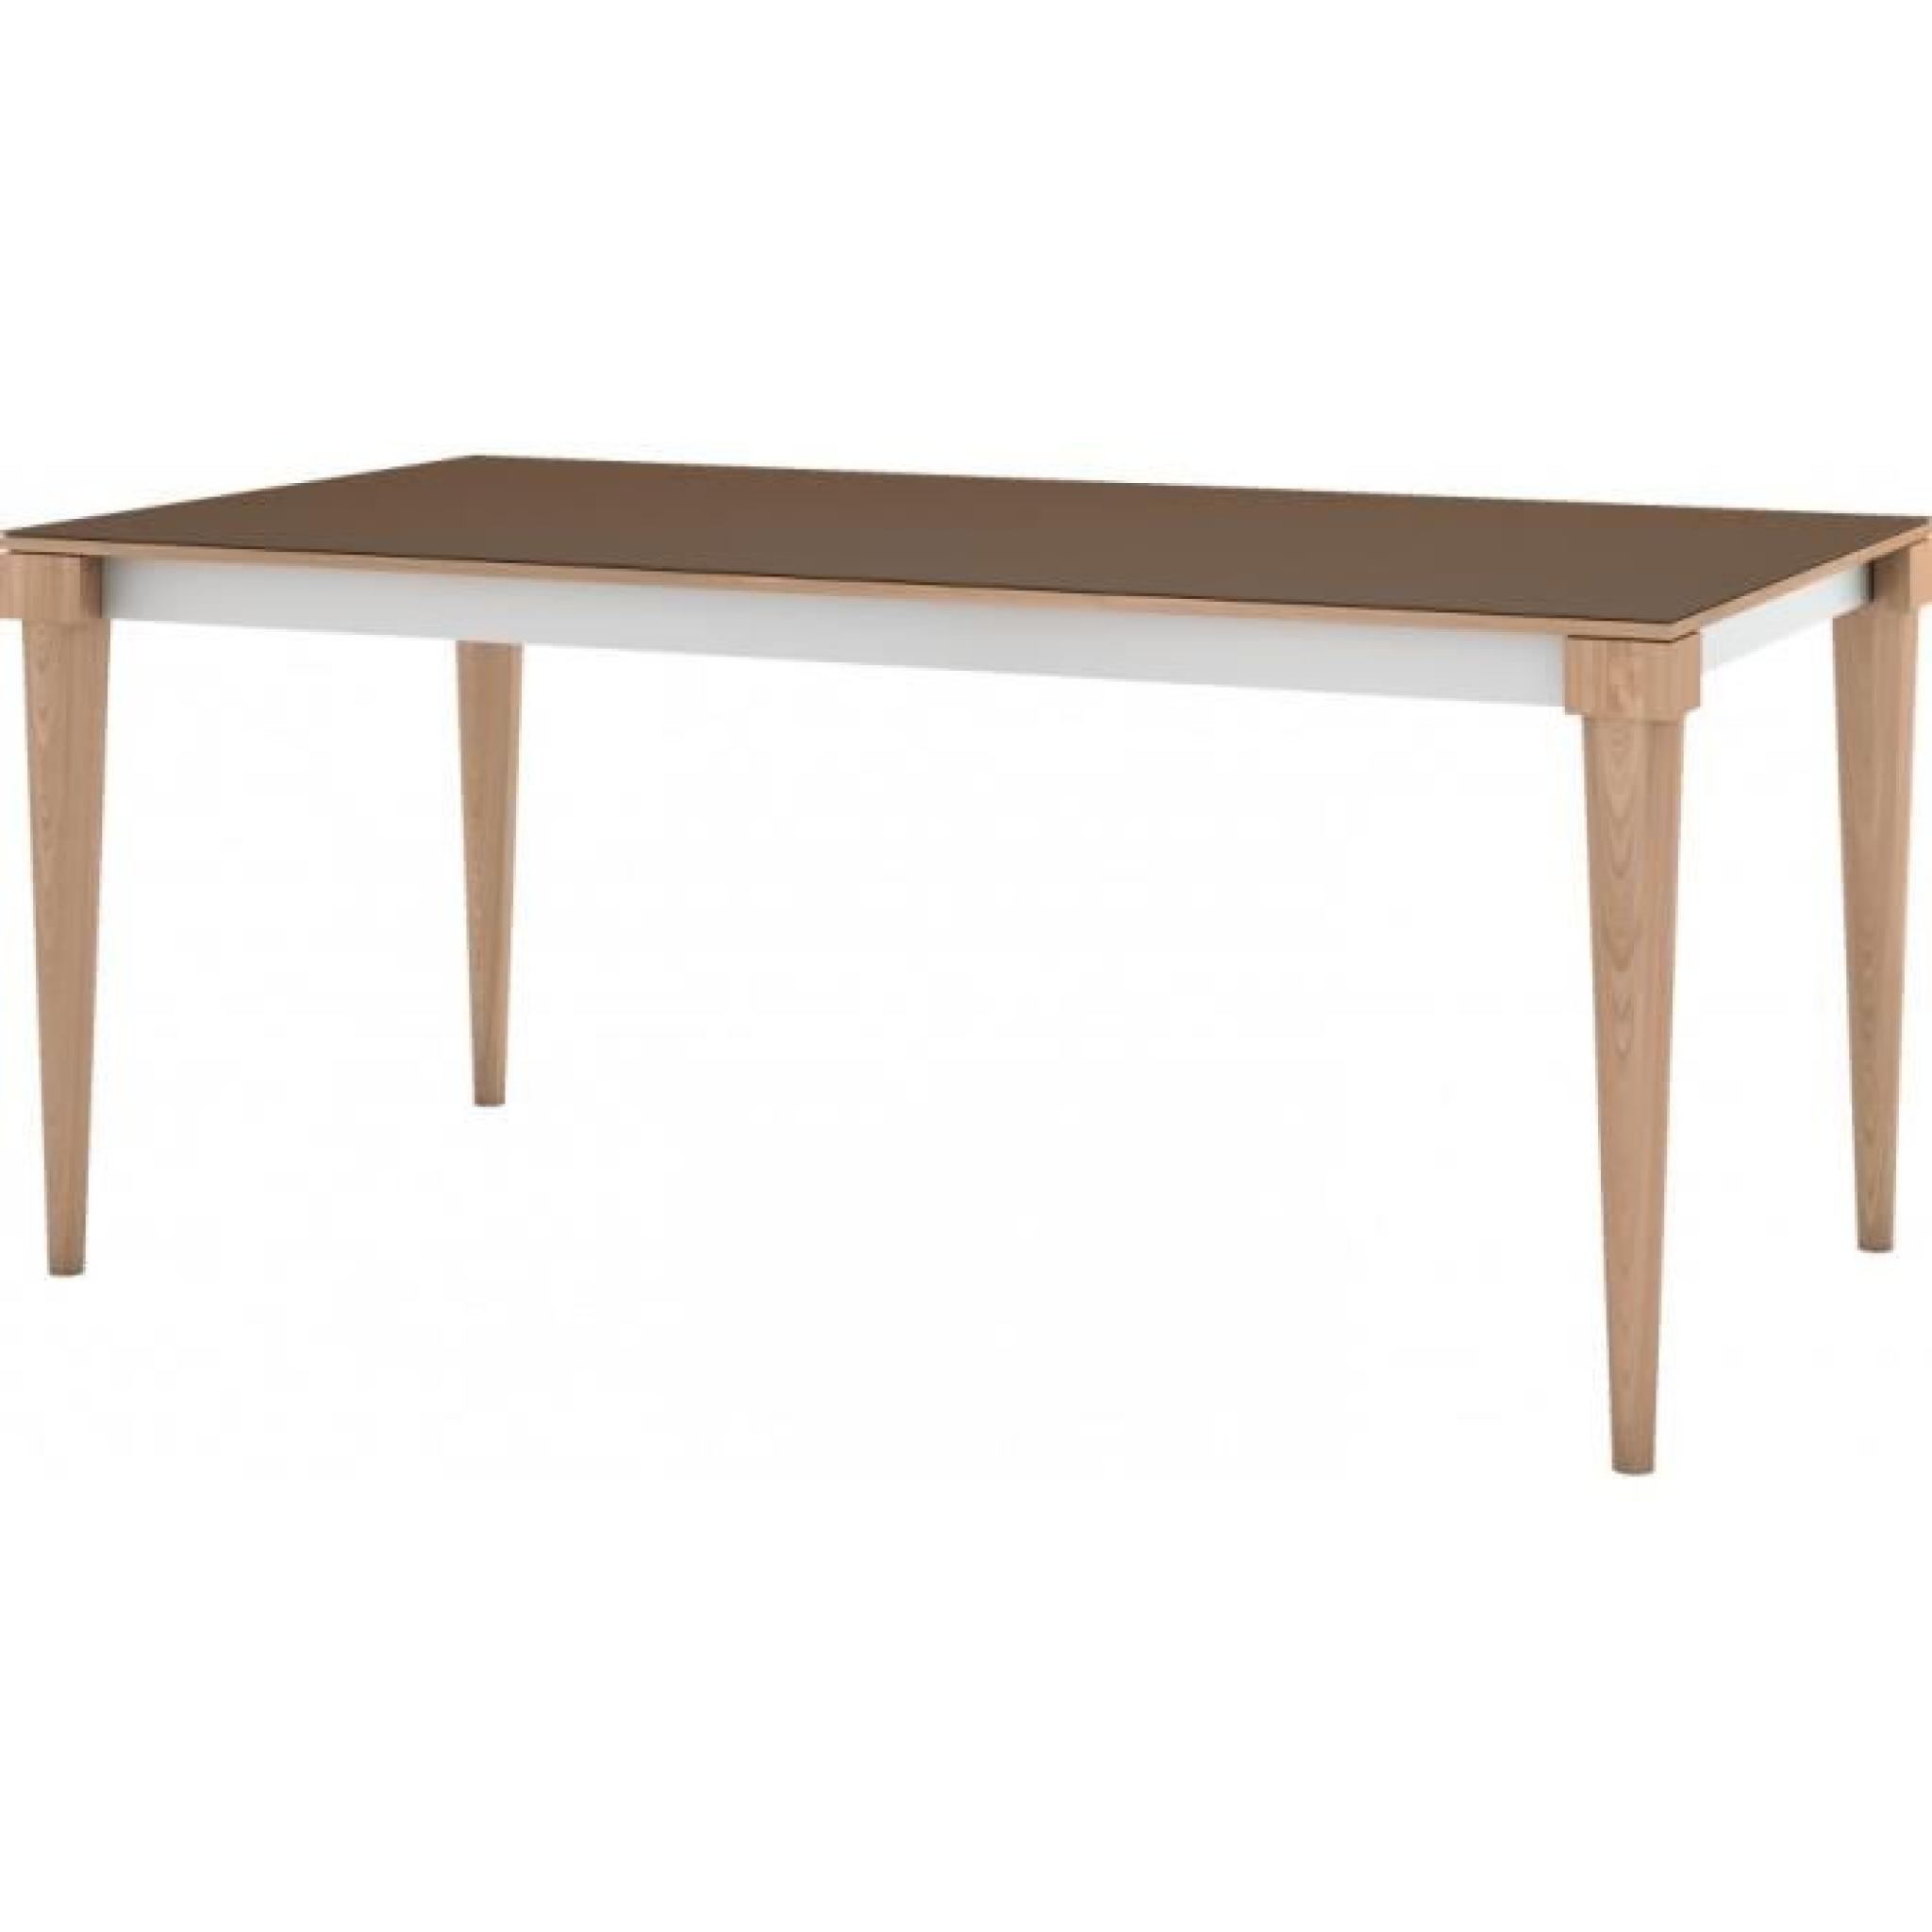 Table de repas scandinave ch ne naturel plateau c ramique chocolat 2 allonges - Table repas scandinave ...